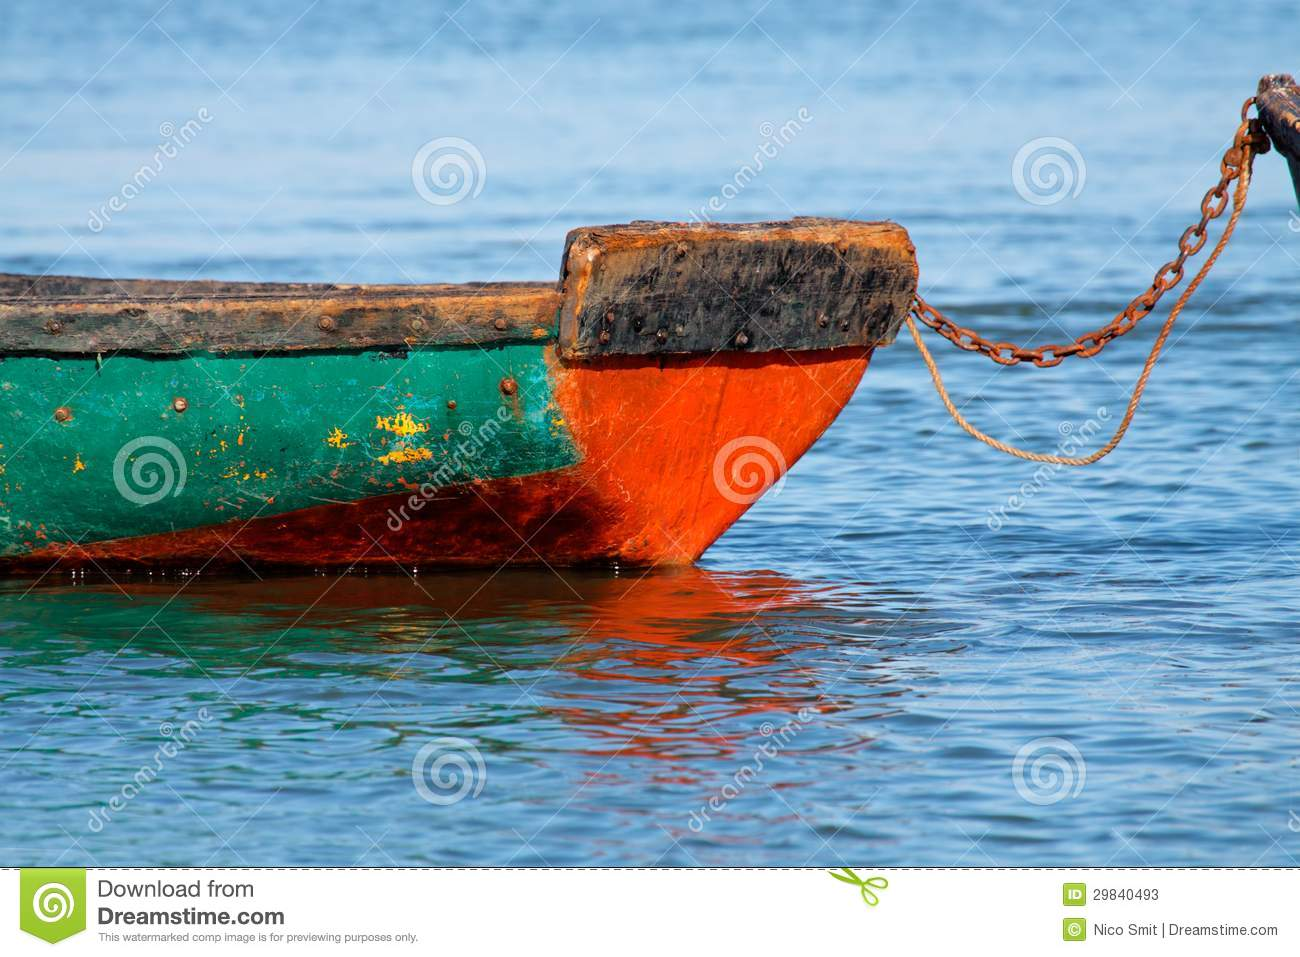 Boat on water stock image. Image of marine, chained, color - 29840493